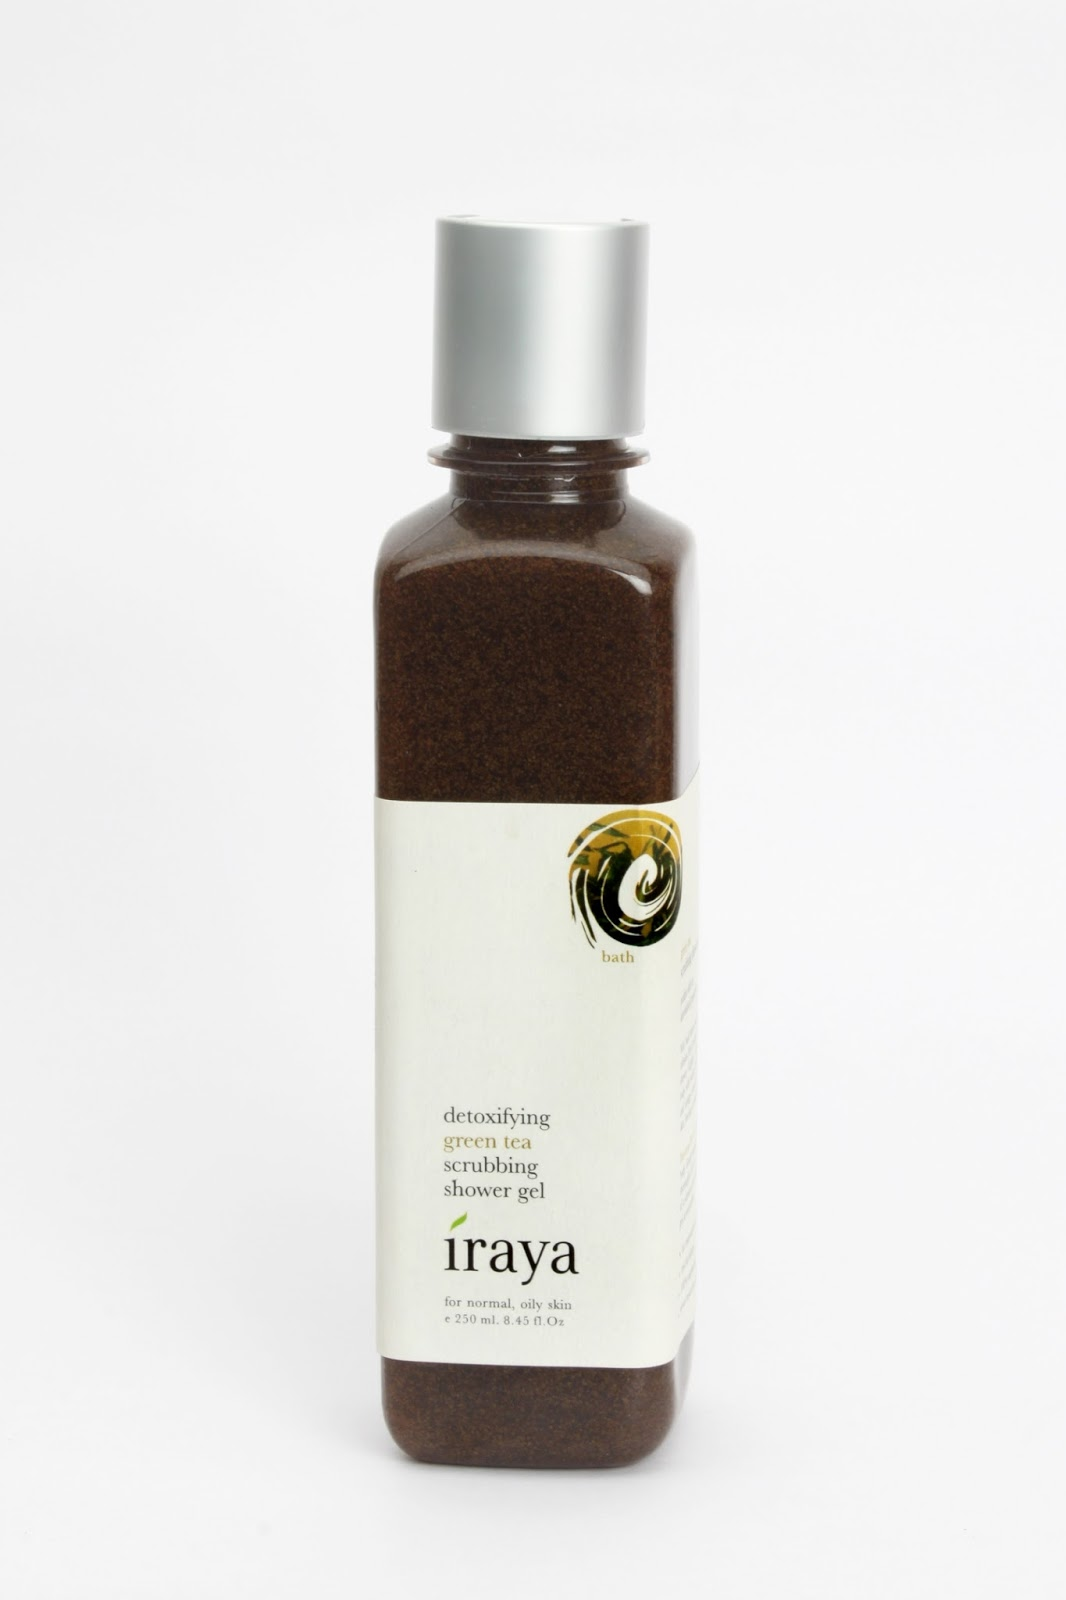 Iraya Detoxifying Green Tea Scrubbing Shower Gel